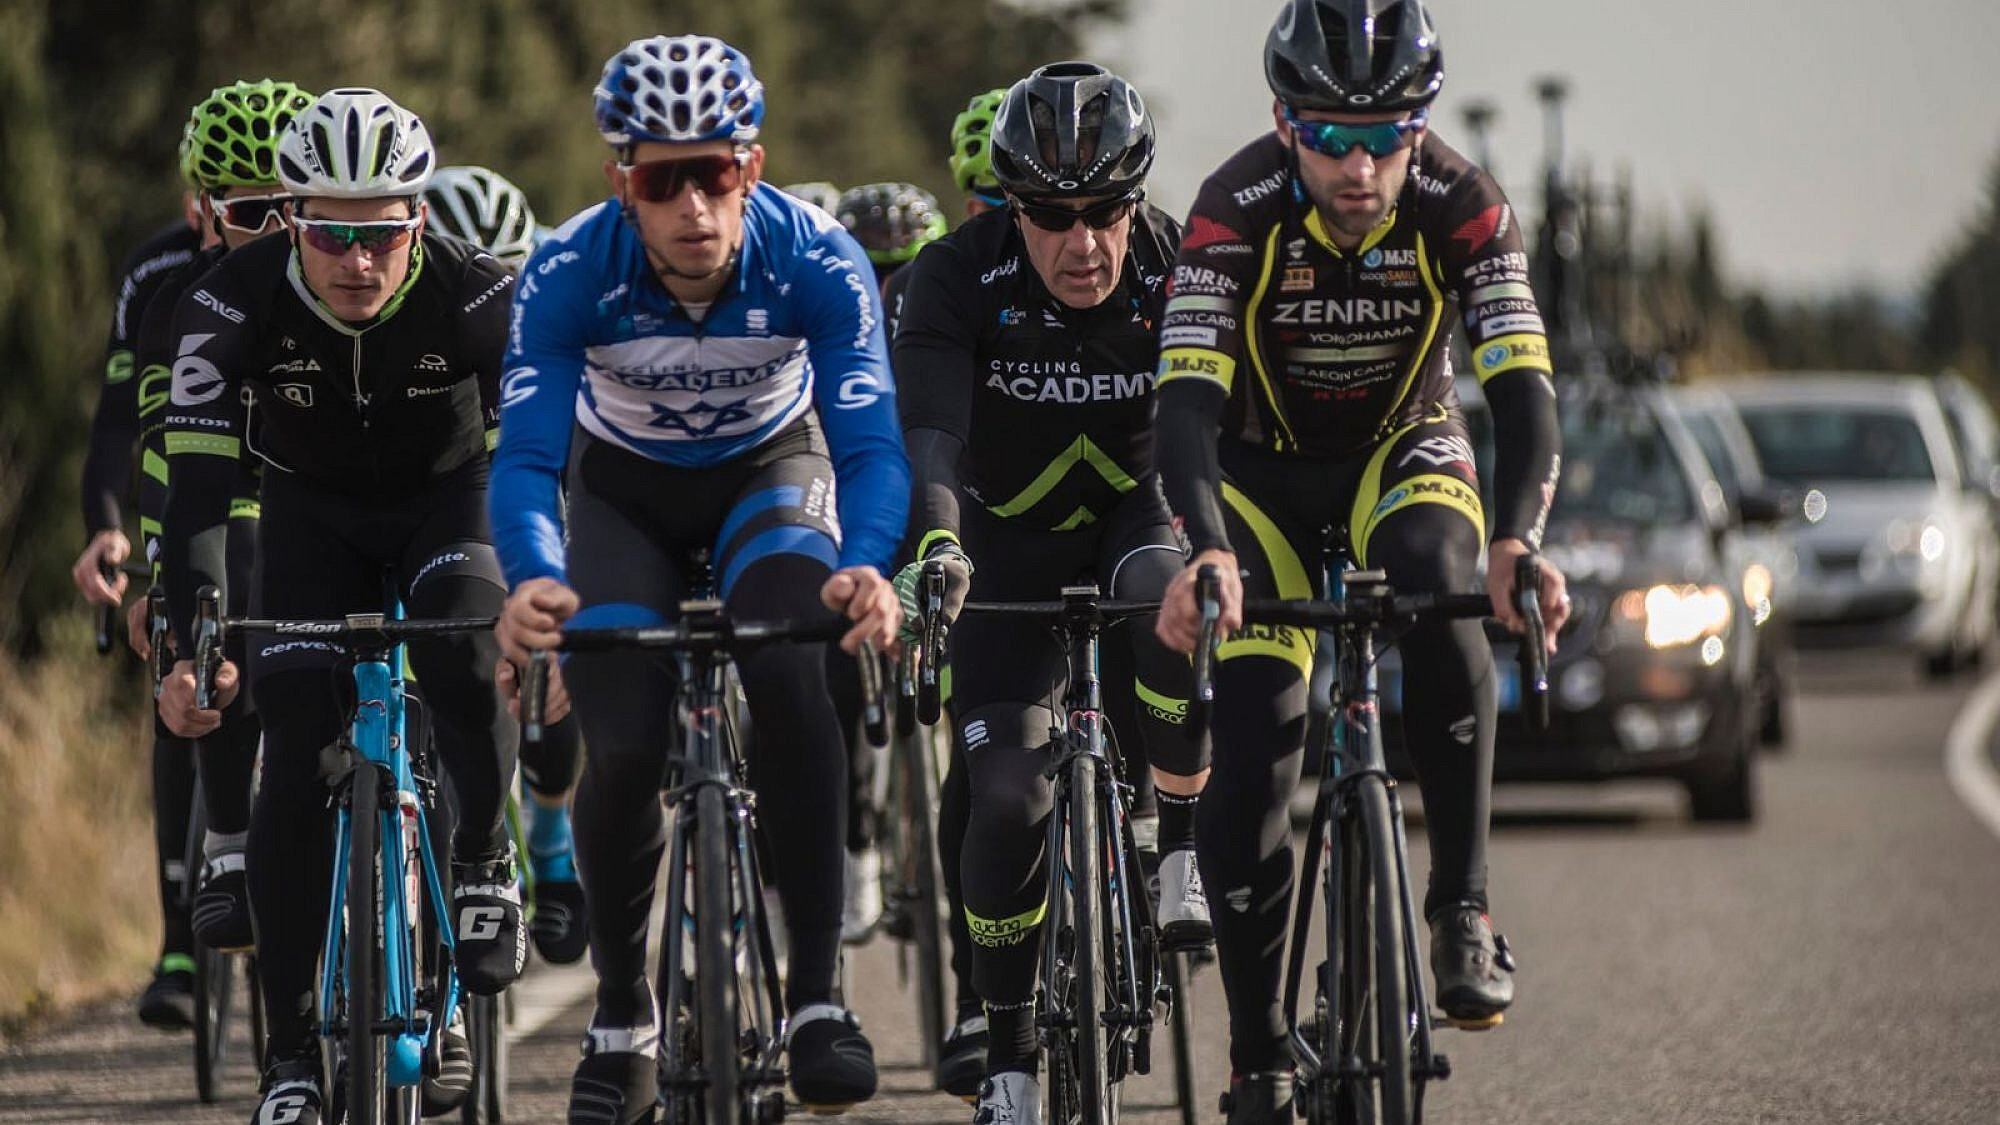 Sylvan Adams training with Israel Cycling Academy. Credit: Israel Cycling Academy.